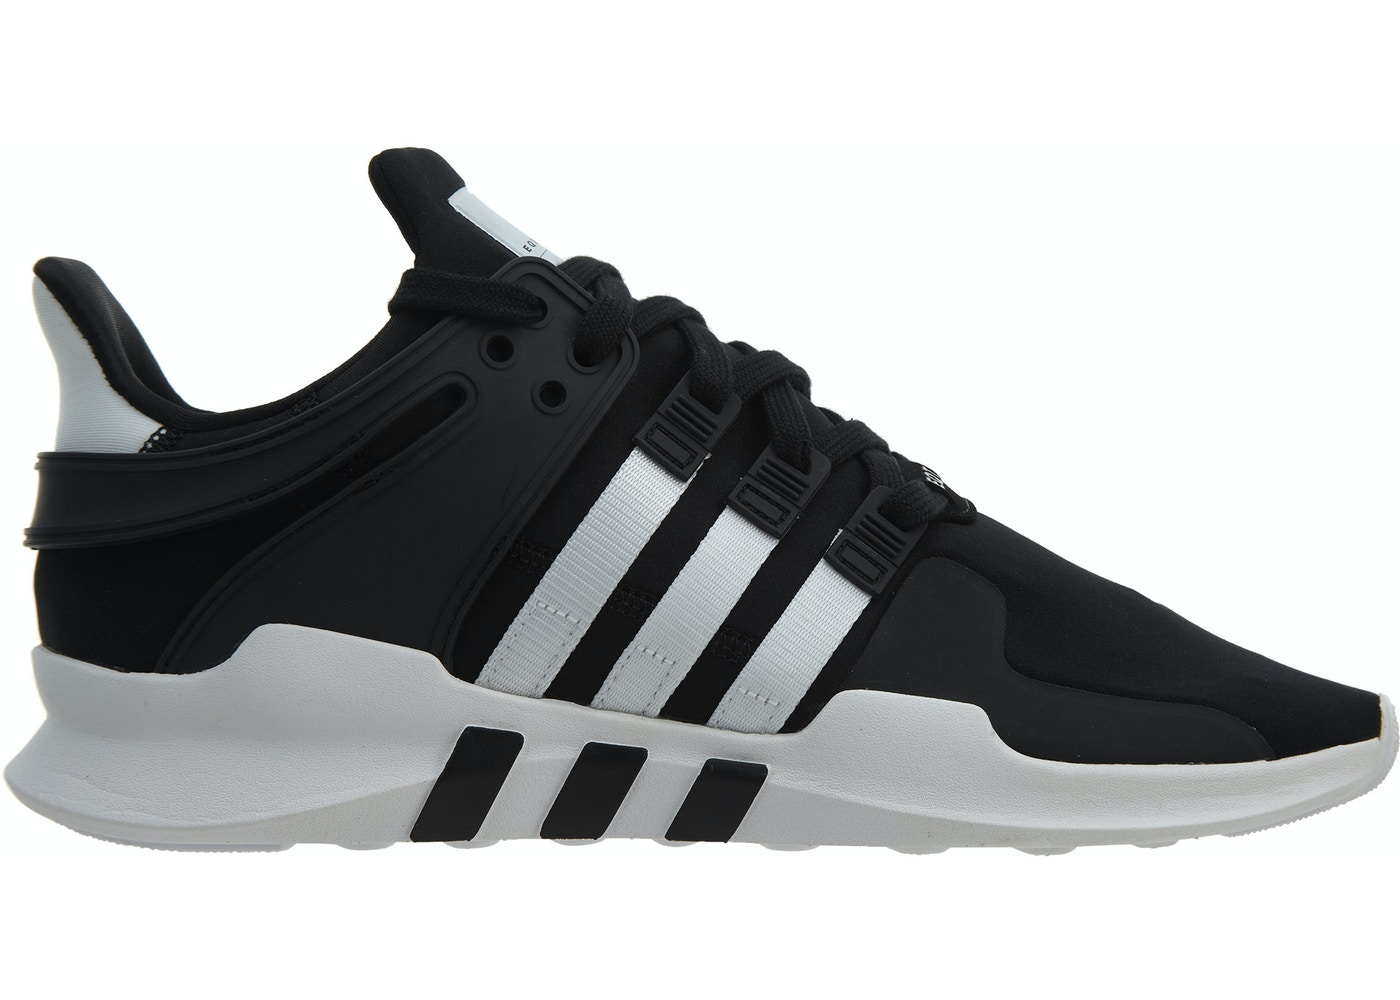 finest selection 00a6c 2e7e1 adidas Eqt Support Adv Black White-Black